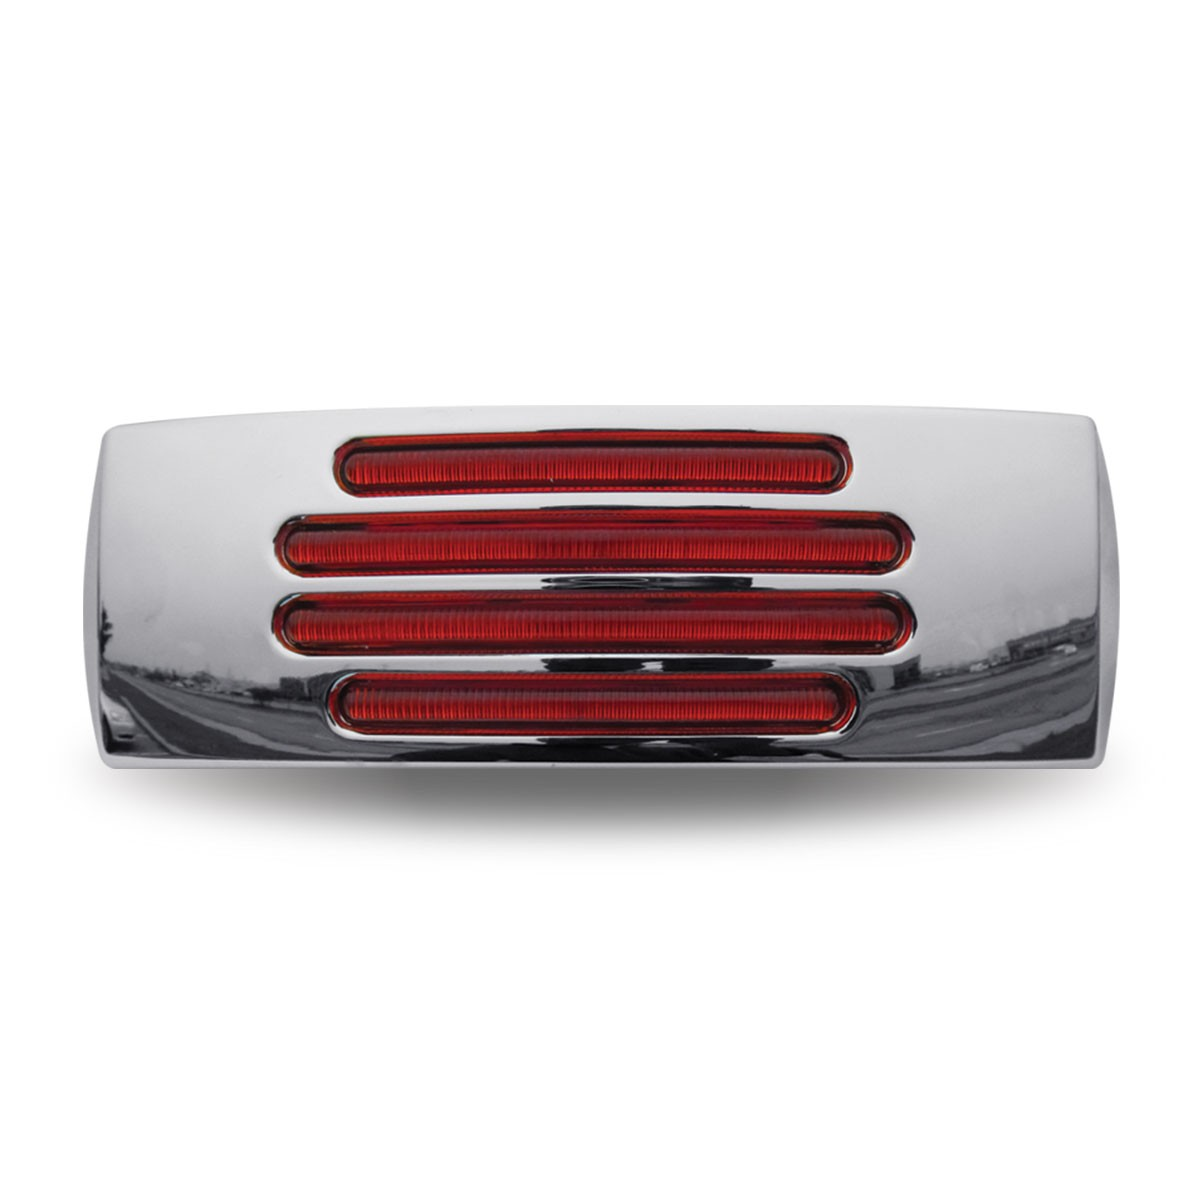 "2"" x 6"" Flatline Red Rectangular LED Trailer Clearance Marker Light - Red LED with Red Lens"